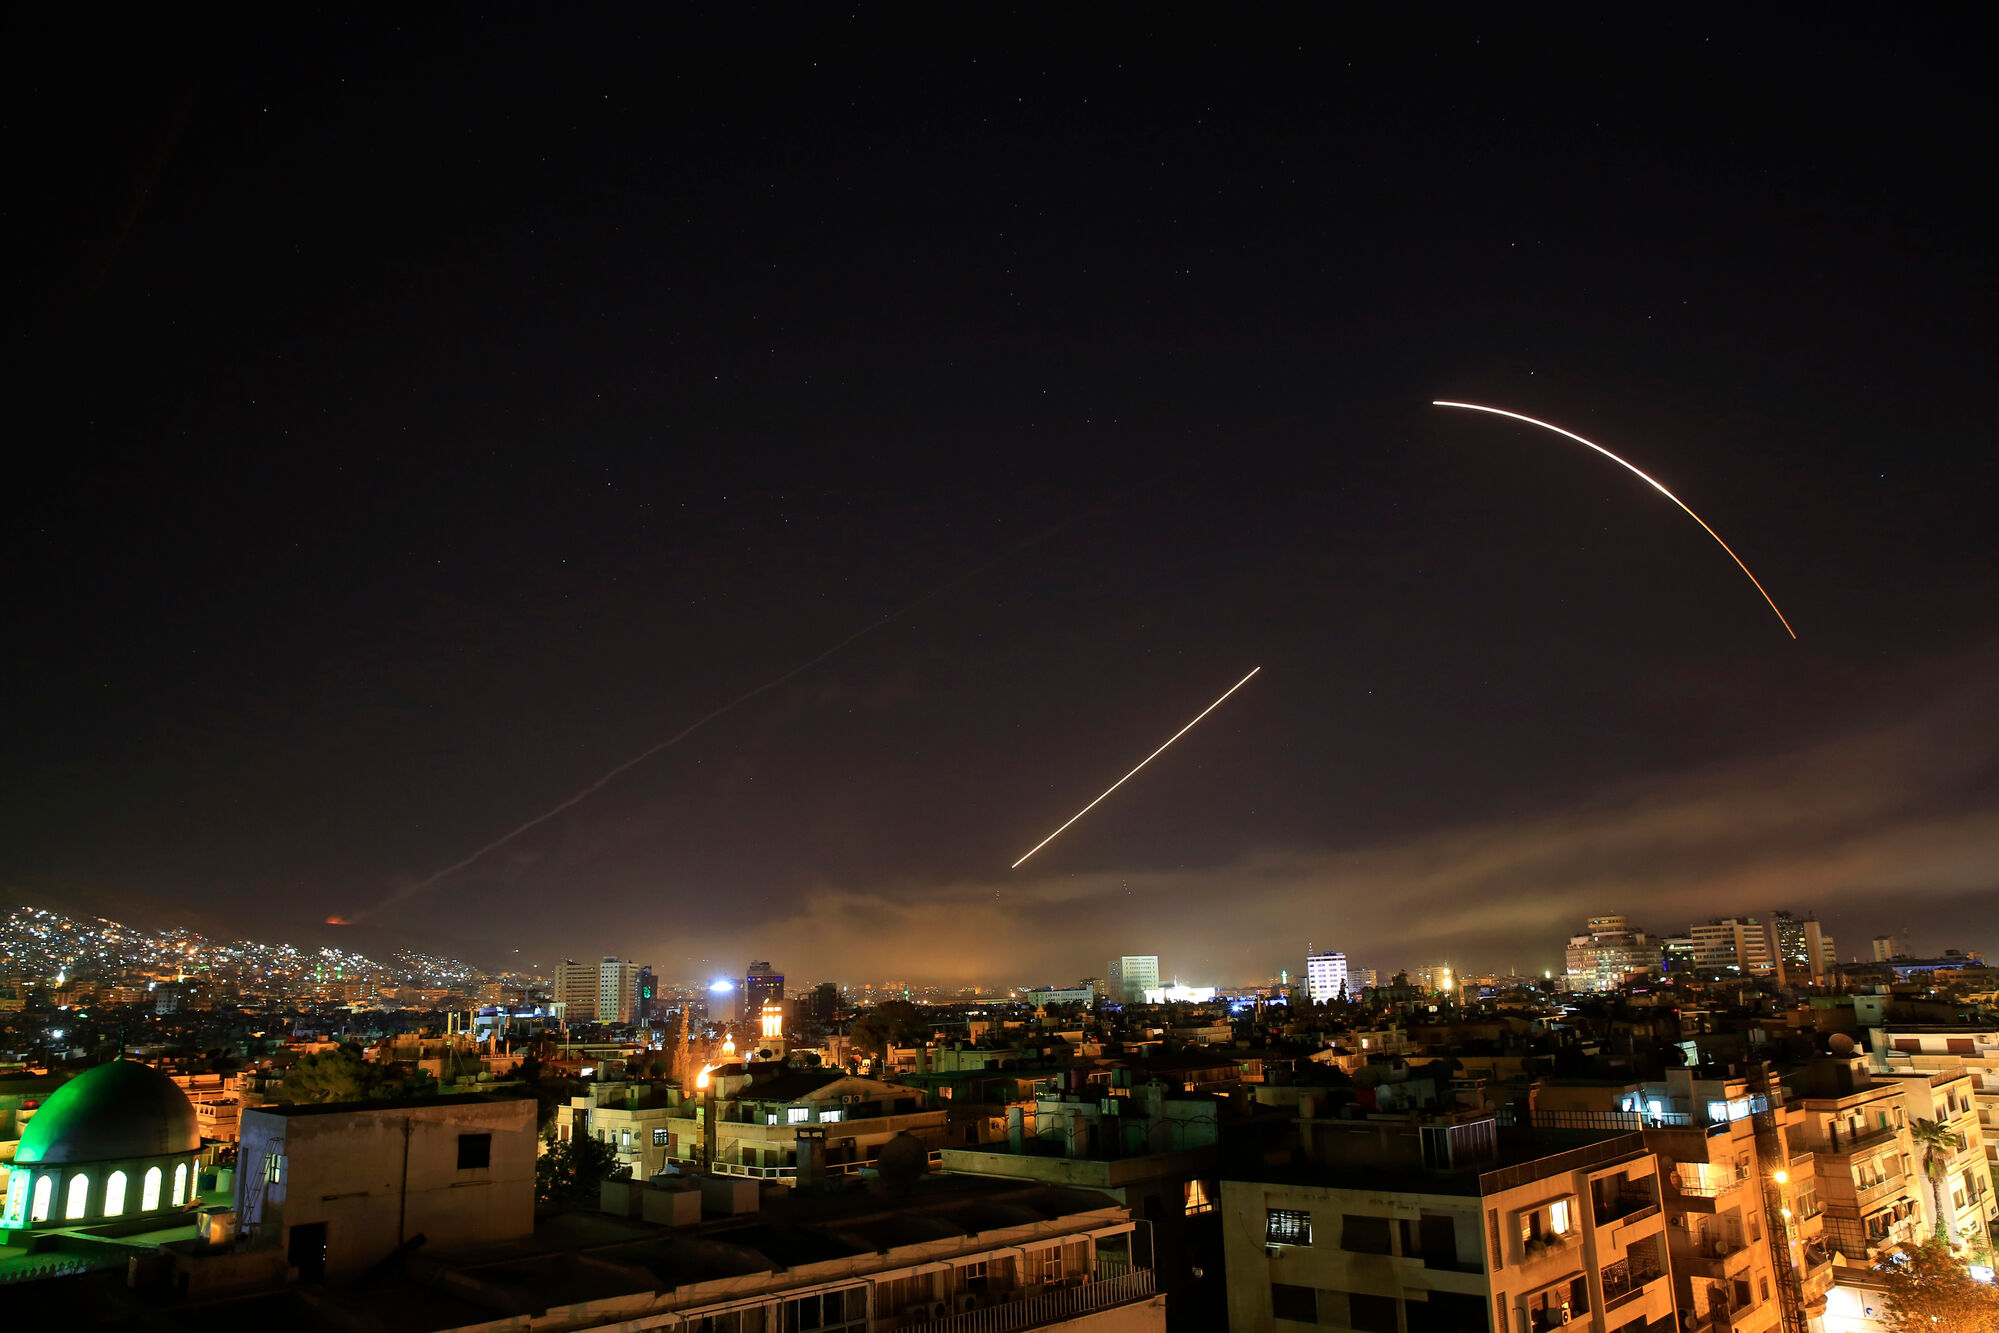 THE ASSOCIATED PRESS  In this Saturday, April 14, 2018 file photo, missiles streak across the Damascus skyline as the U.S. launches an attack on Syria targeting different parts of the capital.